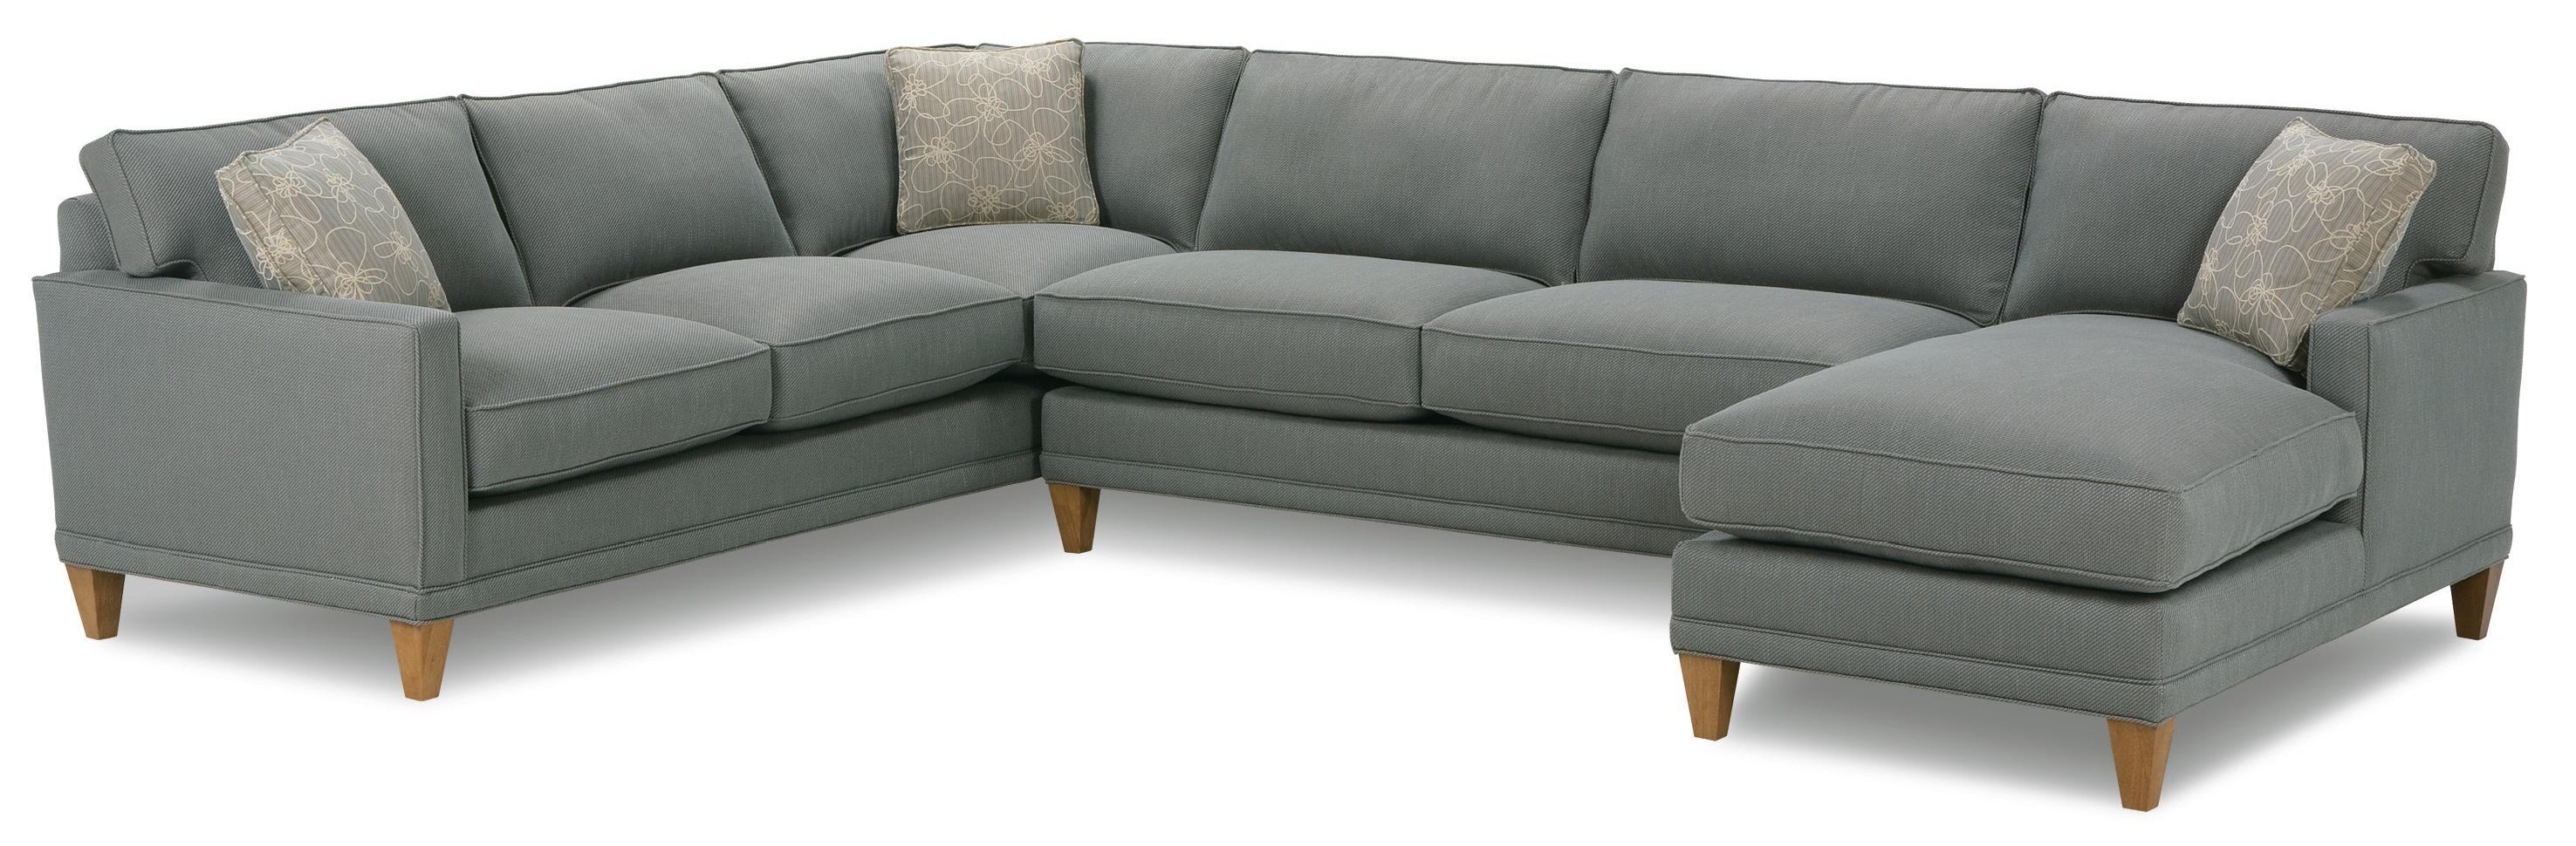 Rowe Townsend Casual Sectional Sofa Group Hudson 39 S Furniture Sofa Sectional